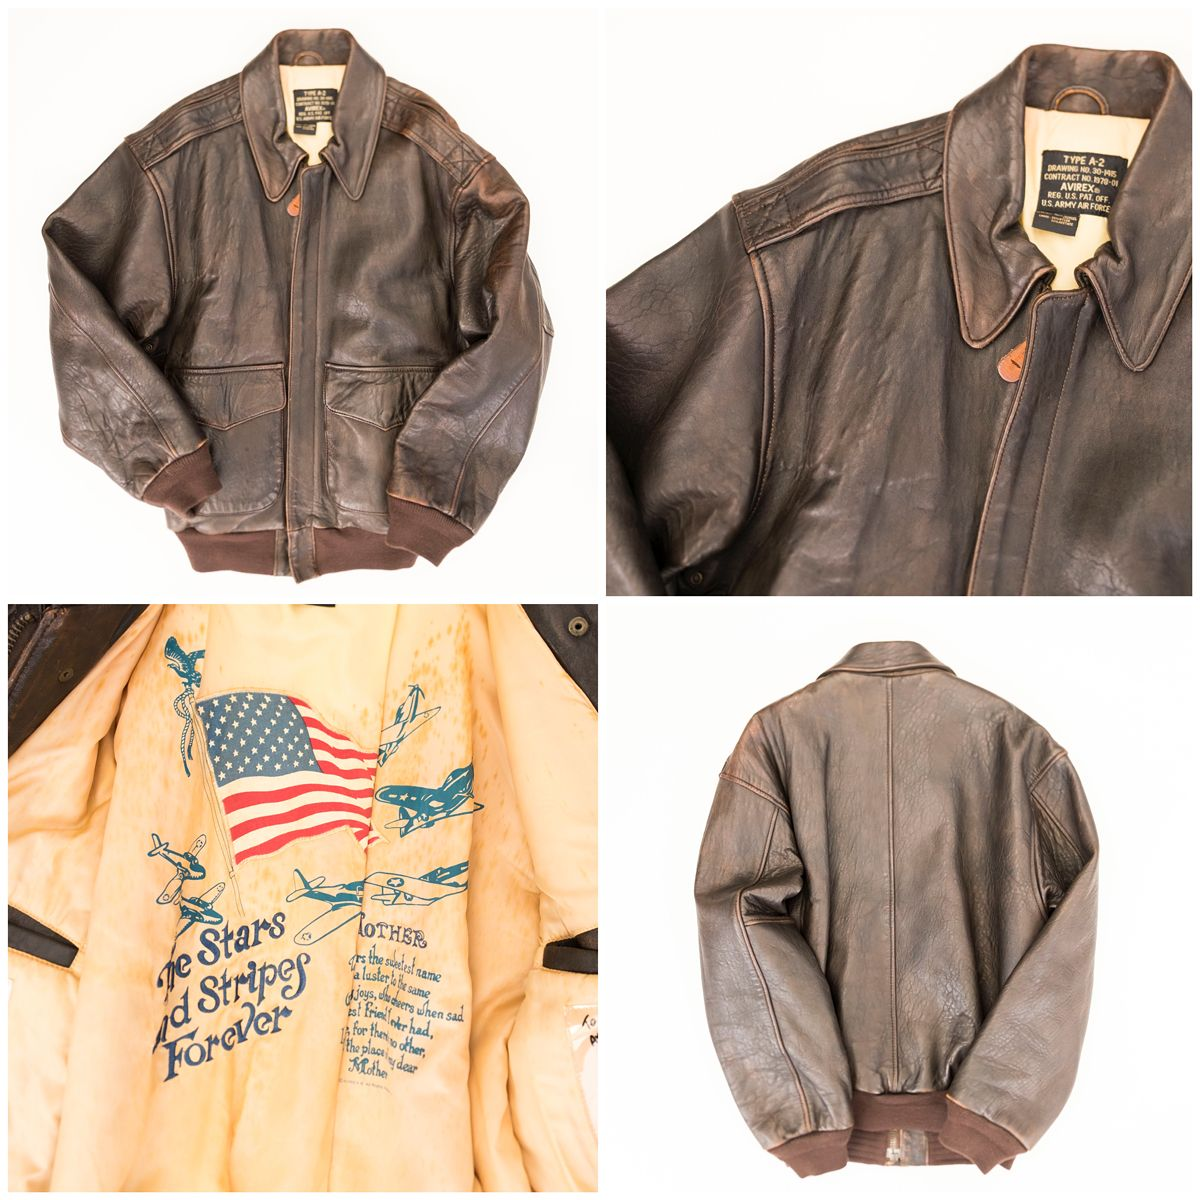 20a8174cf0907 Plain AVIREX The Stars Stripes Forever Leather Military Flight Bomber Jacket  Type A-2 US Army Air Force ( Size   S ) - Japan Lover Me Store